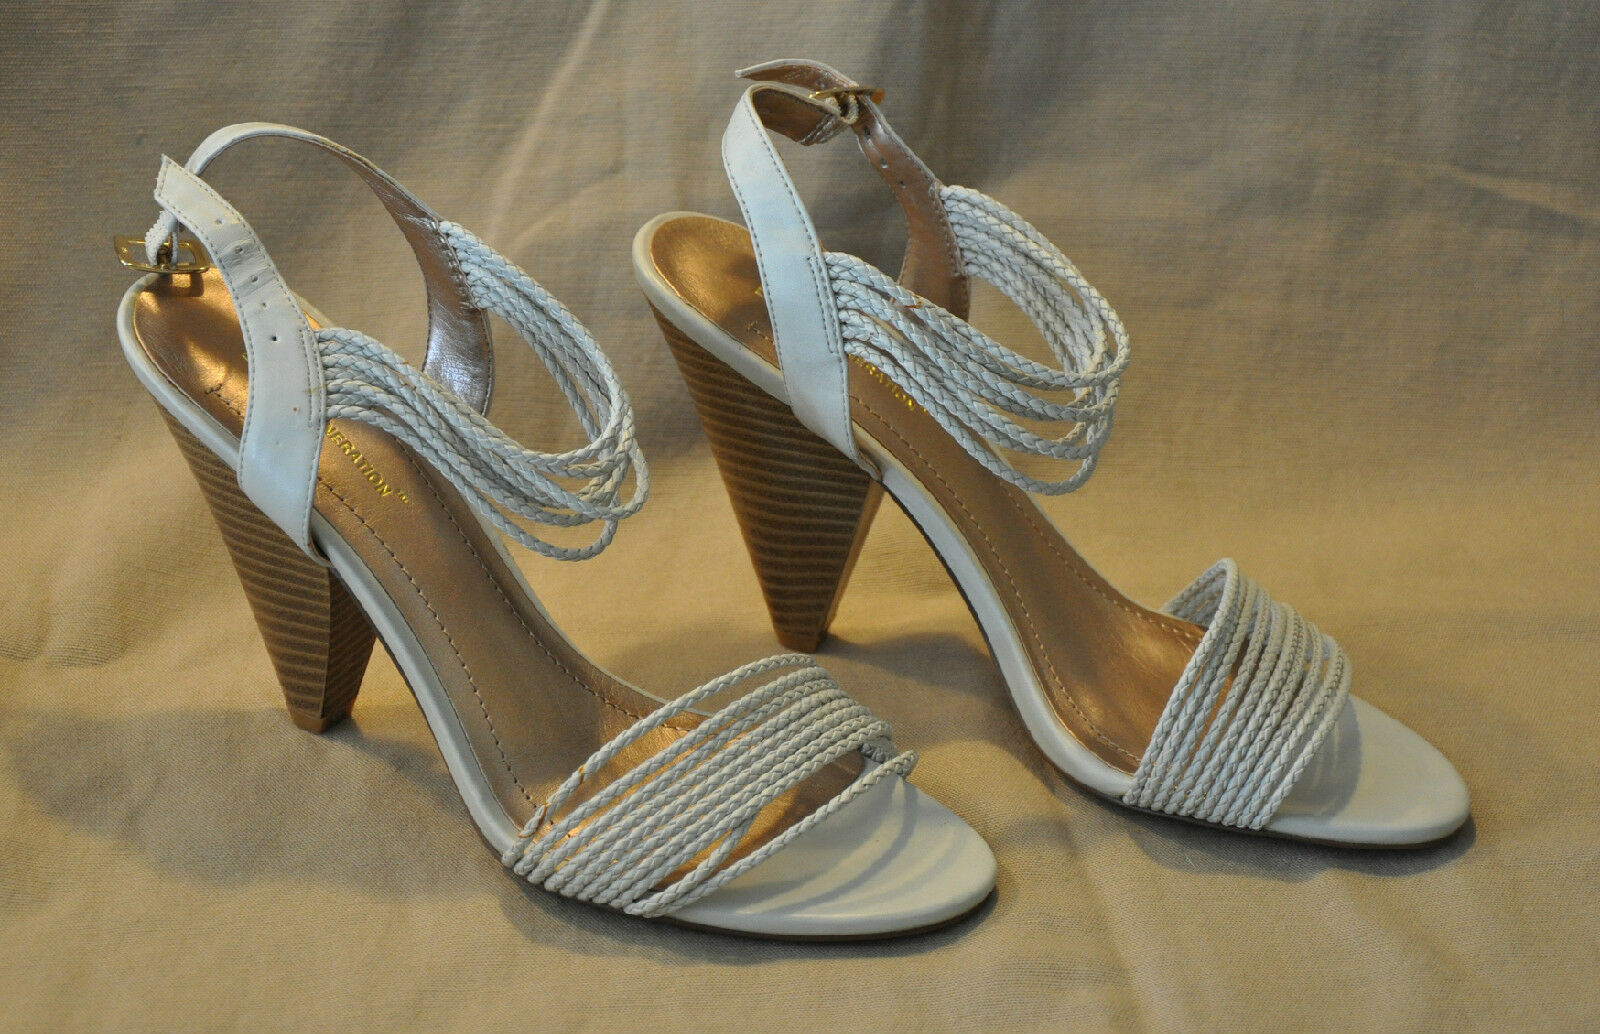 Hot!!! 9 Women's BCB Generation Ankle-Strap Shoes - Ivory -Sz 9 Hot!!! M b5db81